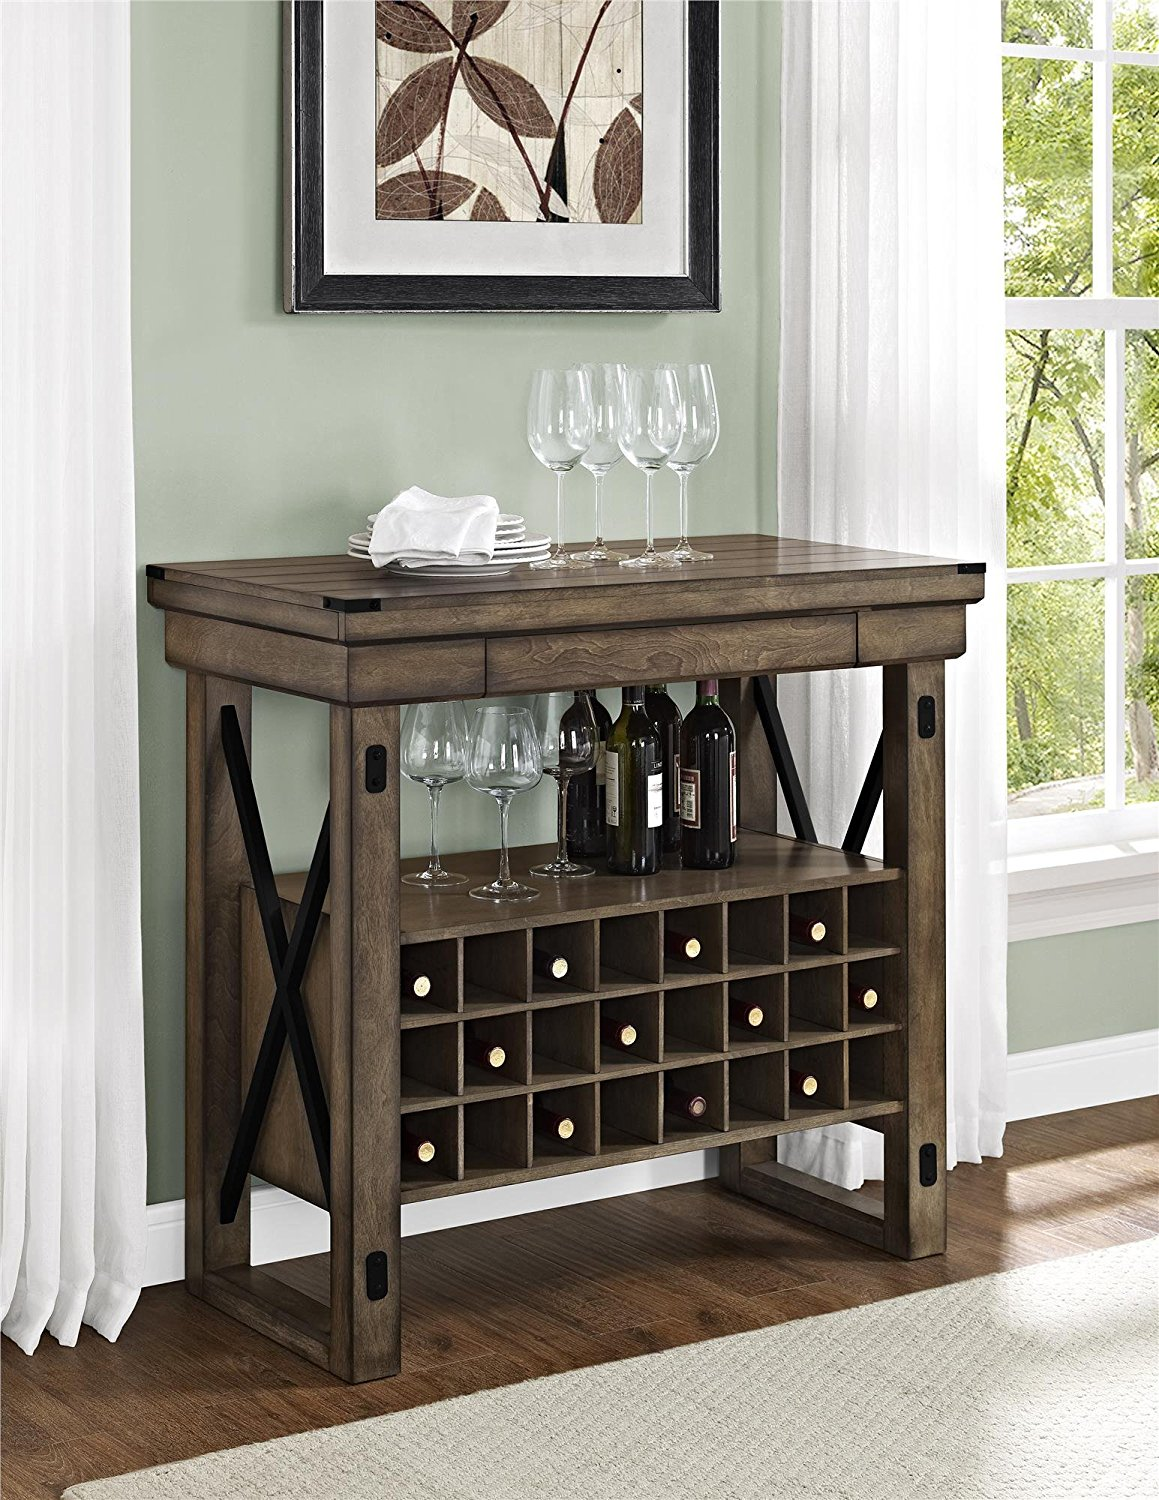 bar cabinet furniture ideas south point home design accent table with wine rack couches small round pedestal side white storage light pine end tables shelf large lamp shades